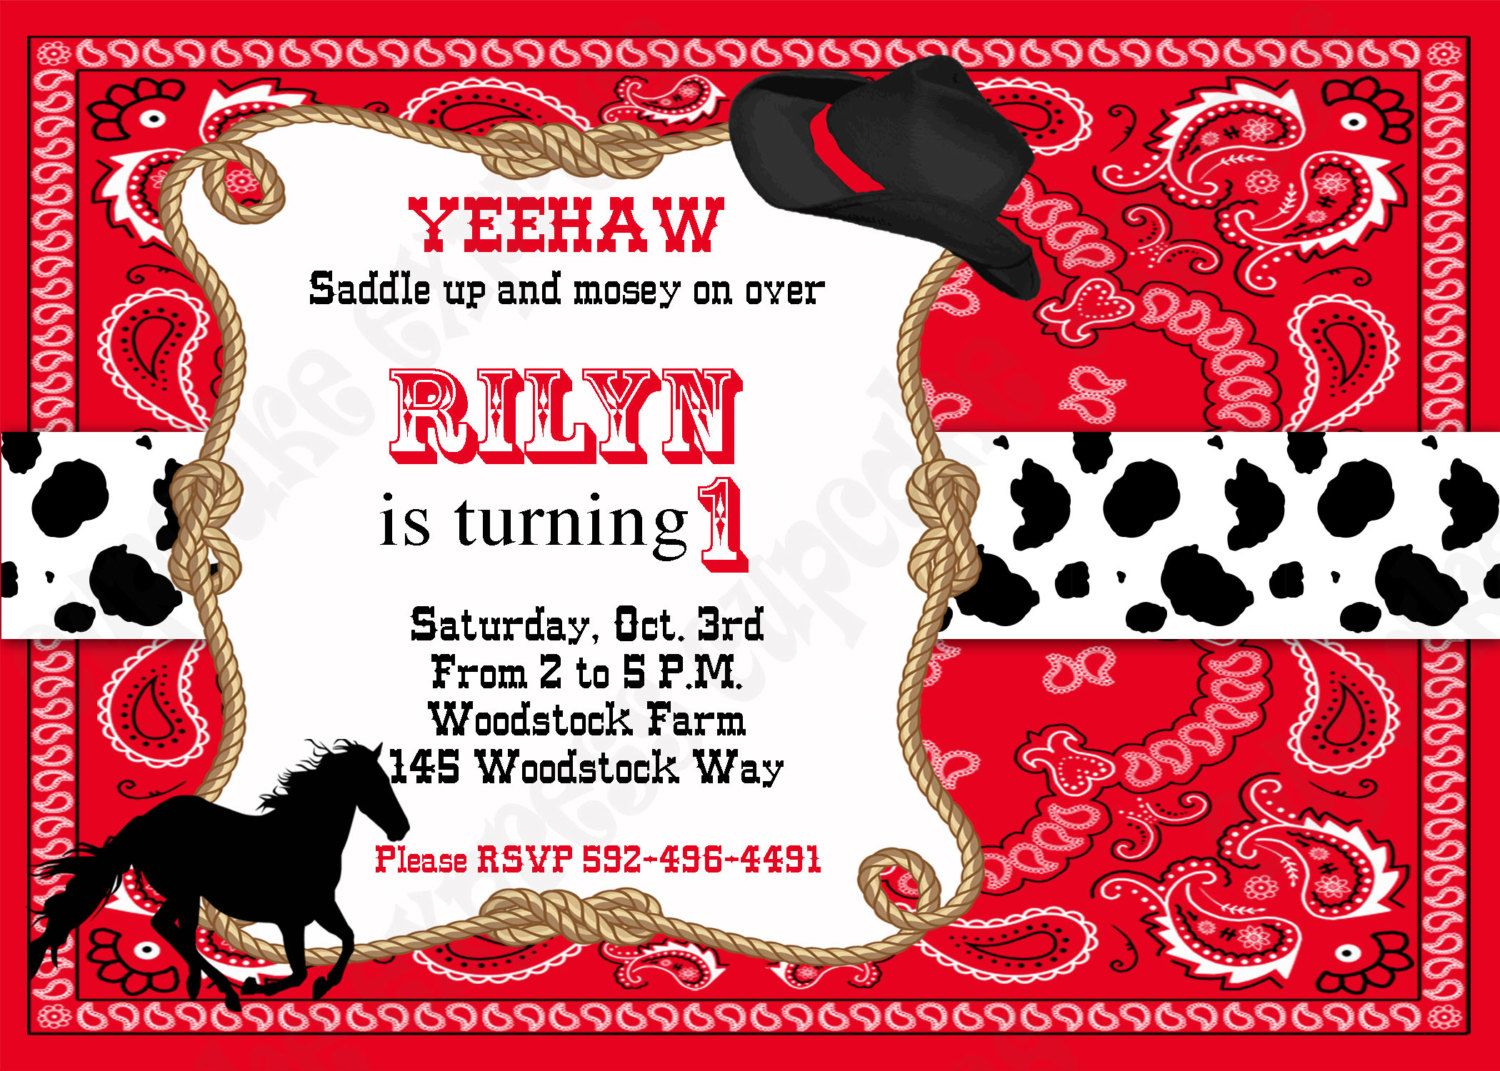 diy cowboy birthday party printable huge deluxe package black red horse boots western by cupcake express - Cowboy Party Invitations